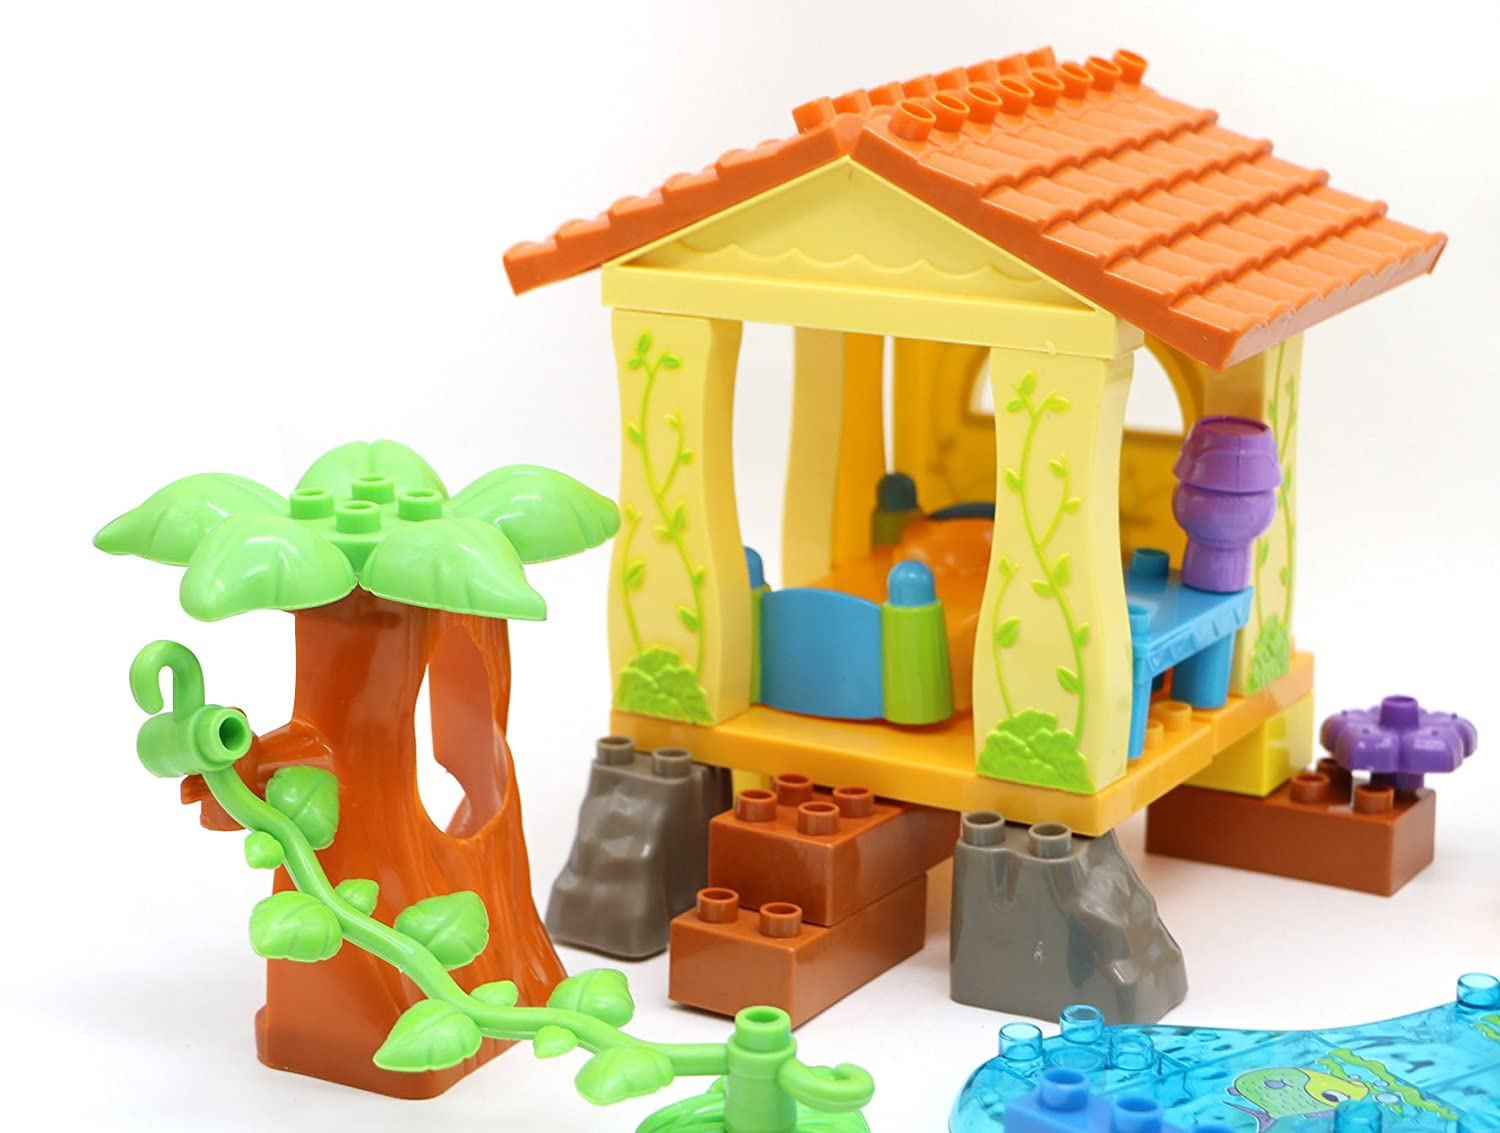 39 Piece Little Treasures Forest Tree House Play Set Pre-Kindergarten Large Building Block Toys for Toddlers